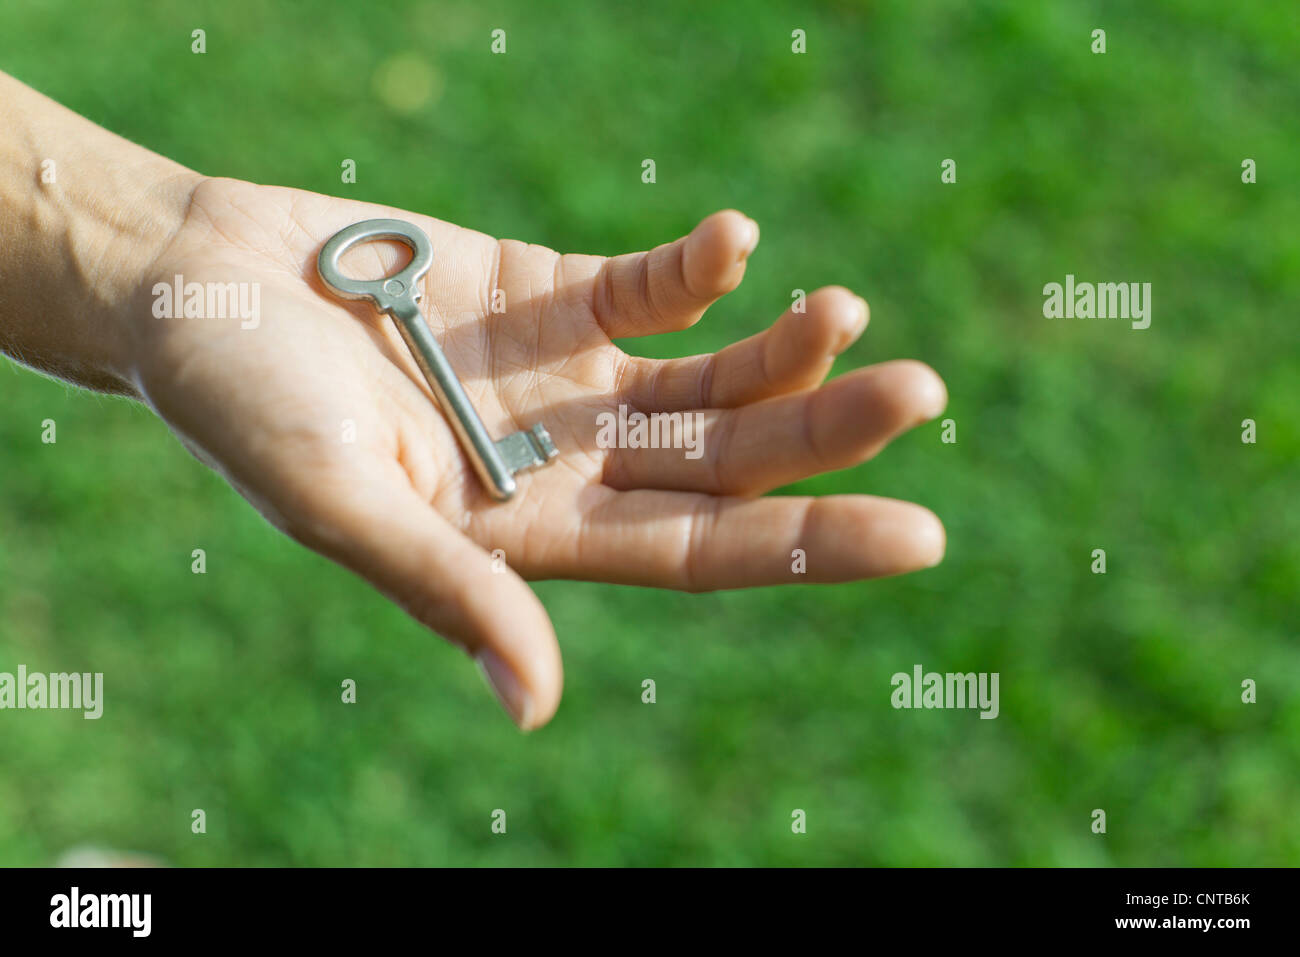 Woman holding key in palm - Stock Image